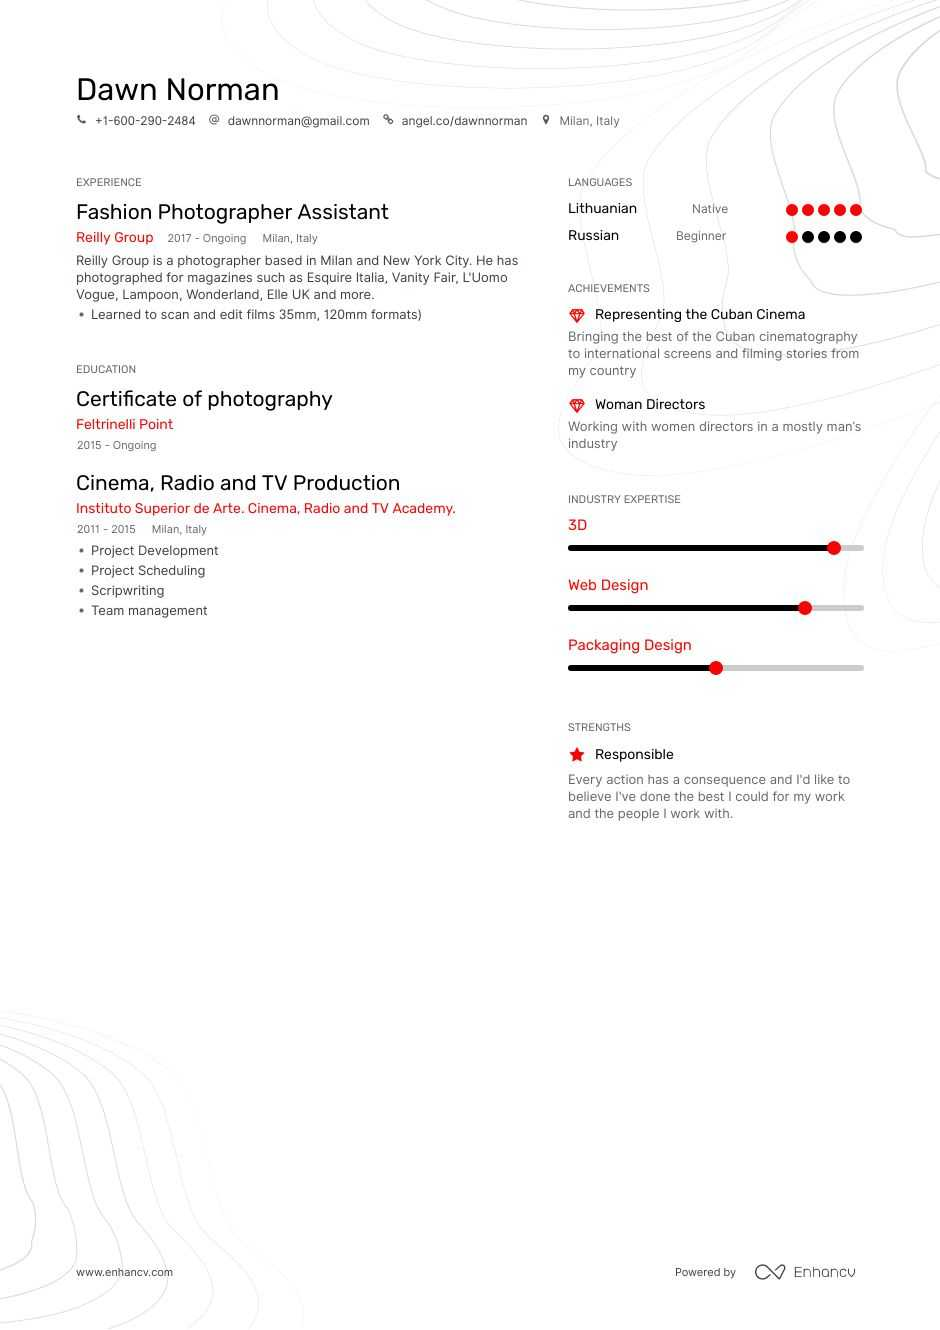 photographer assistant resume example for enhancv manager duties preschool teacher Resume Photographer Assistant Resume